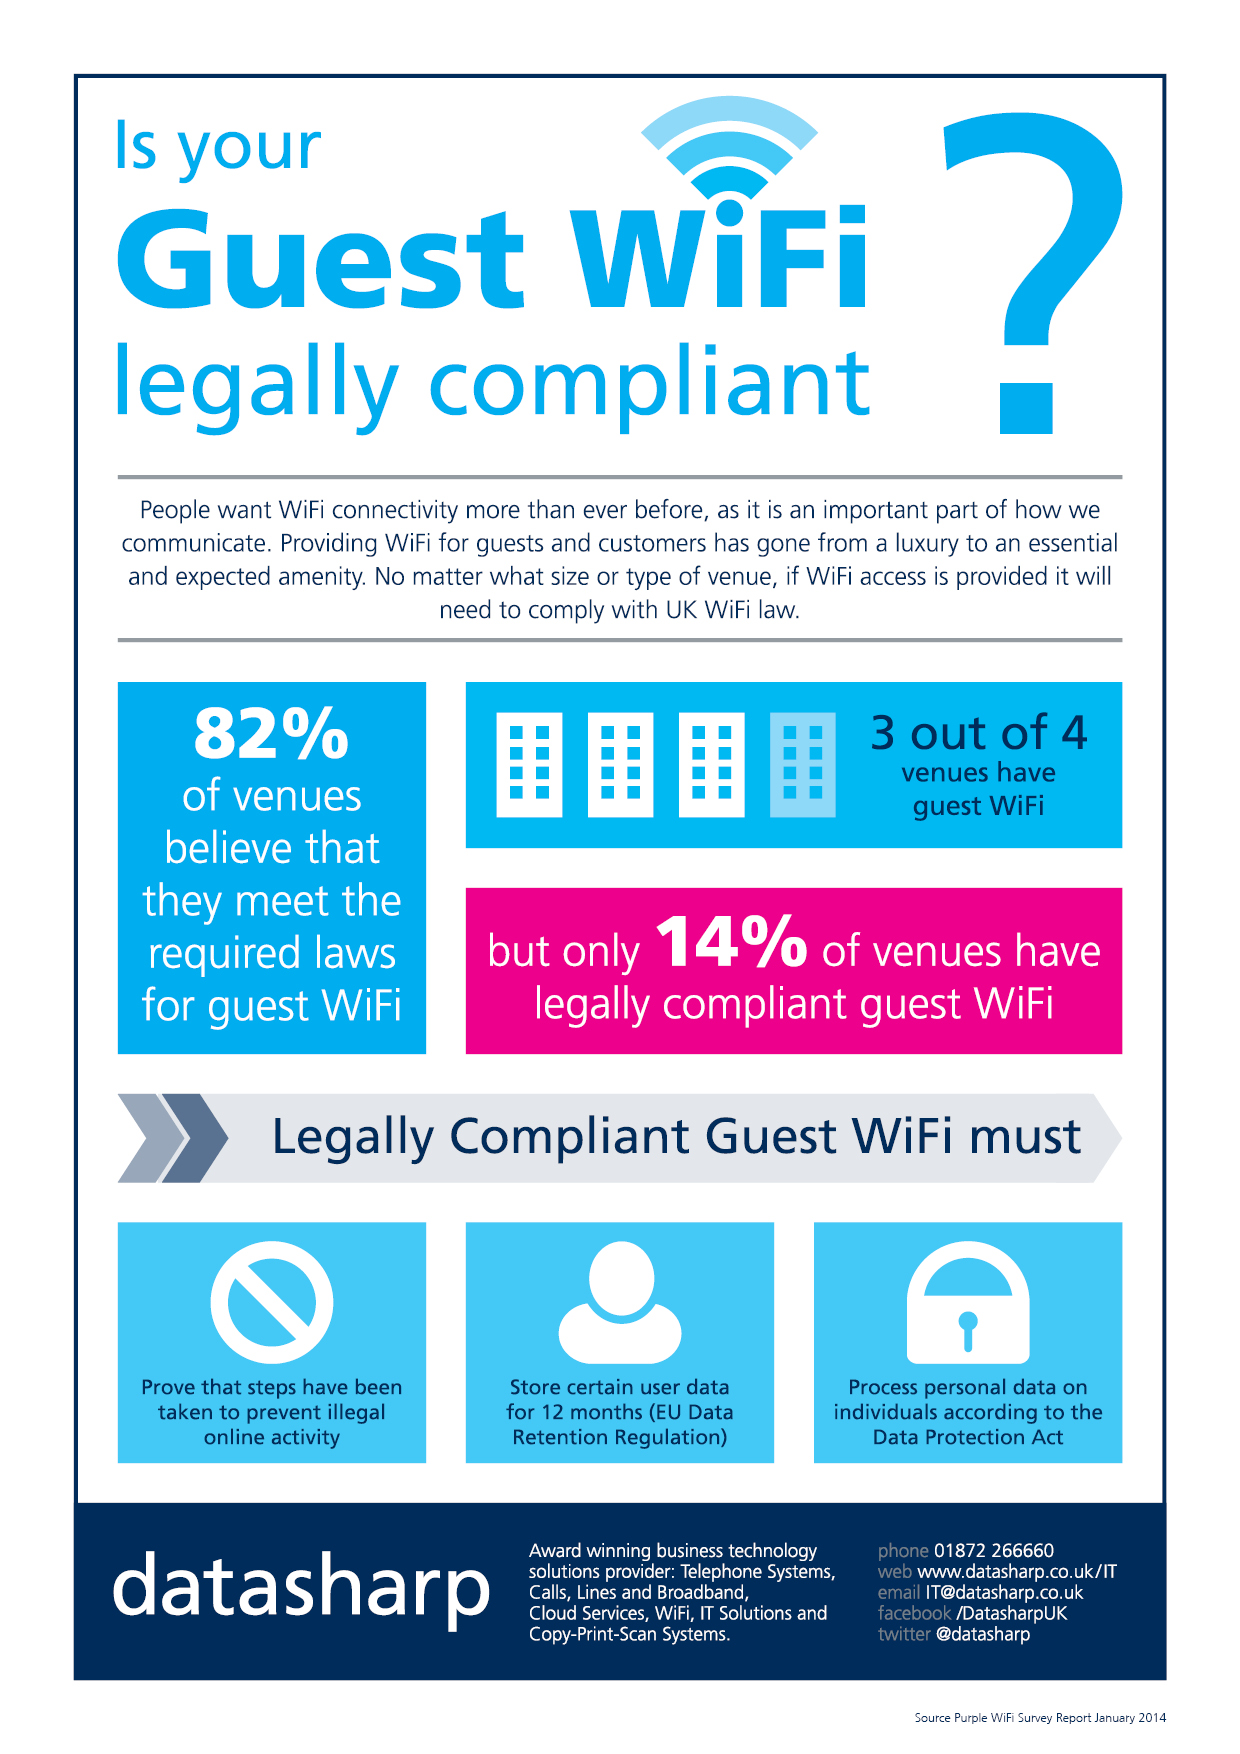 Guest Wi-Fi Legally Compliant infographic